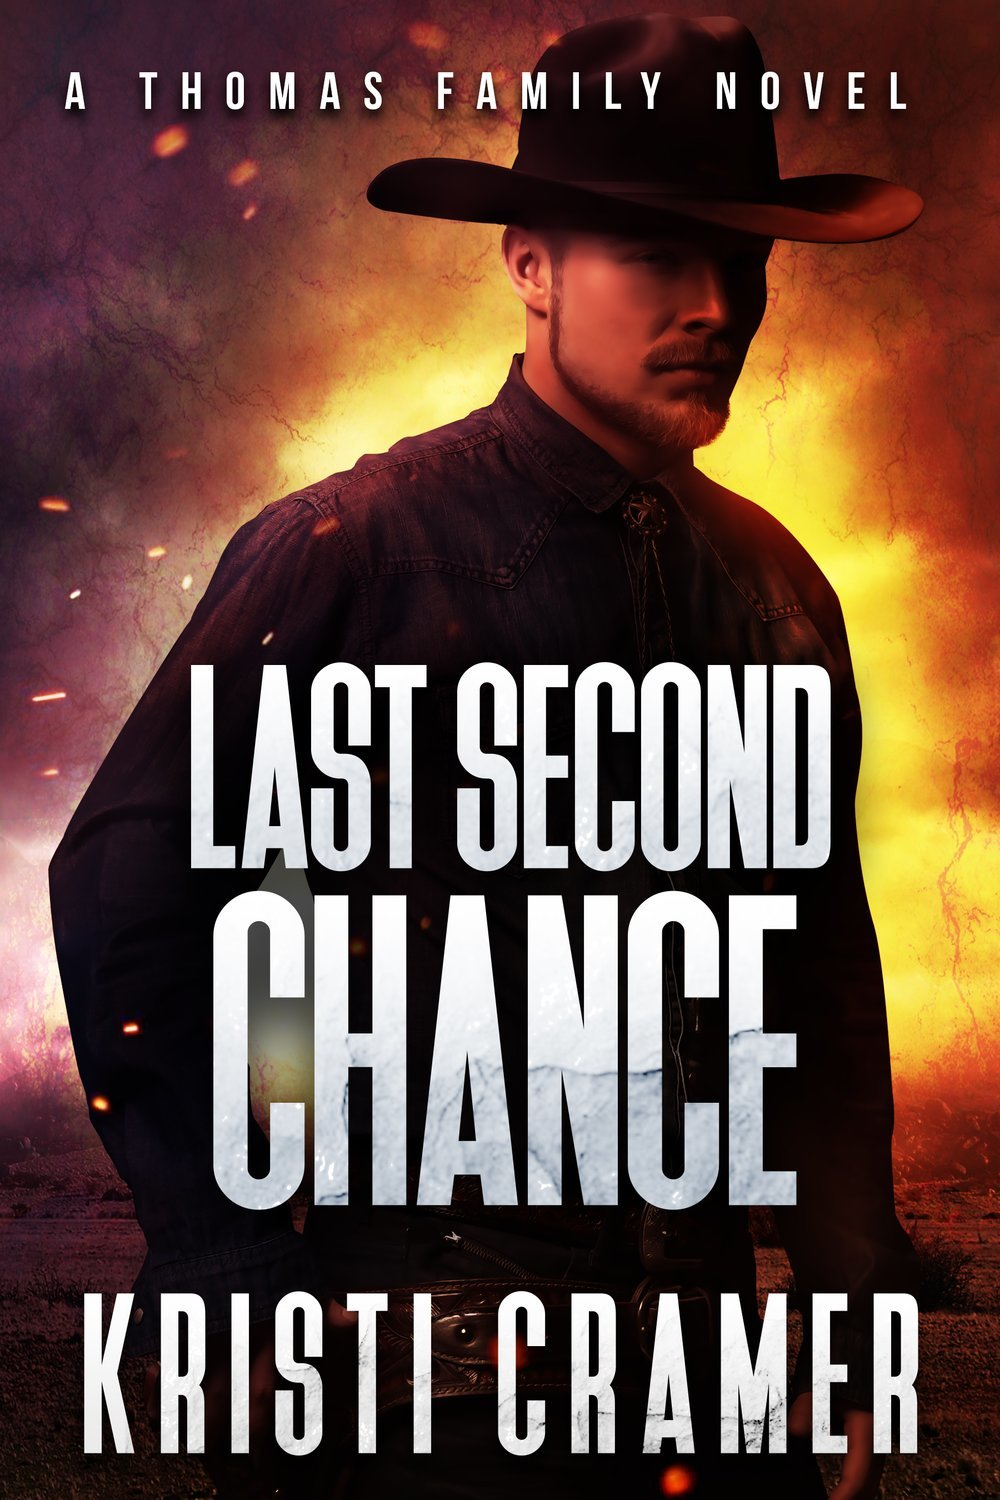 Last Second Chance: A Thomas Family Novel (#2)